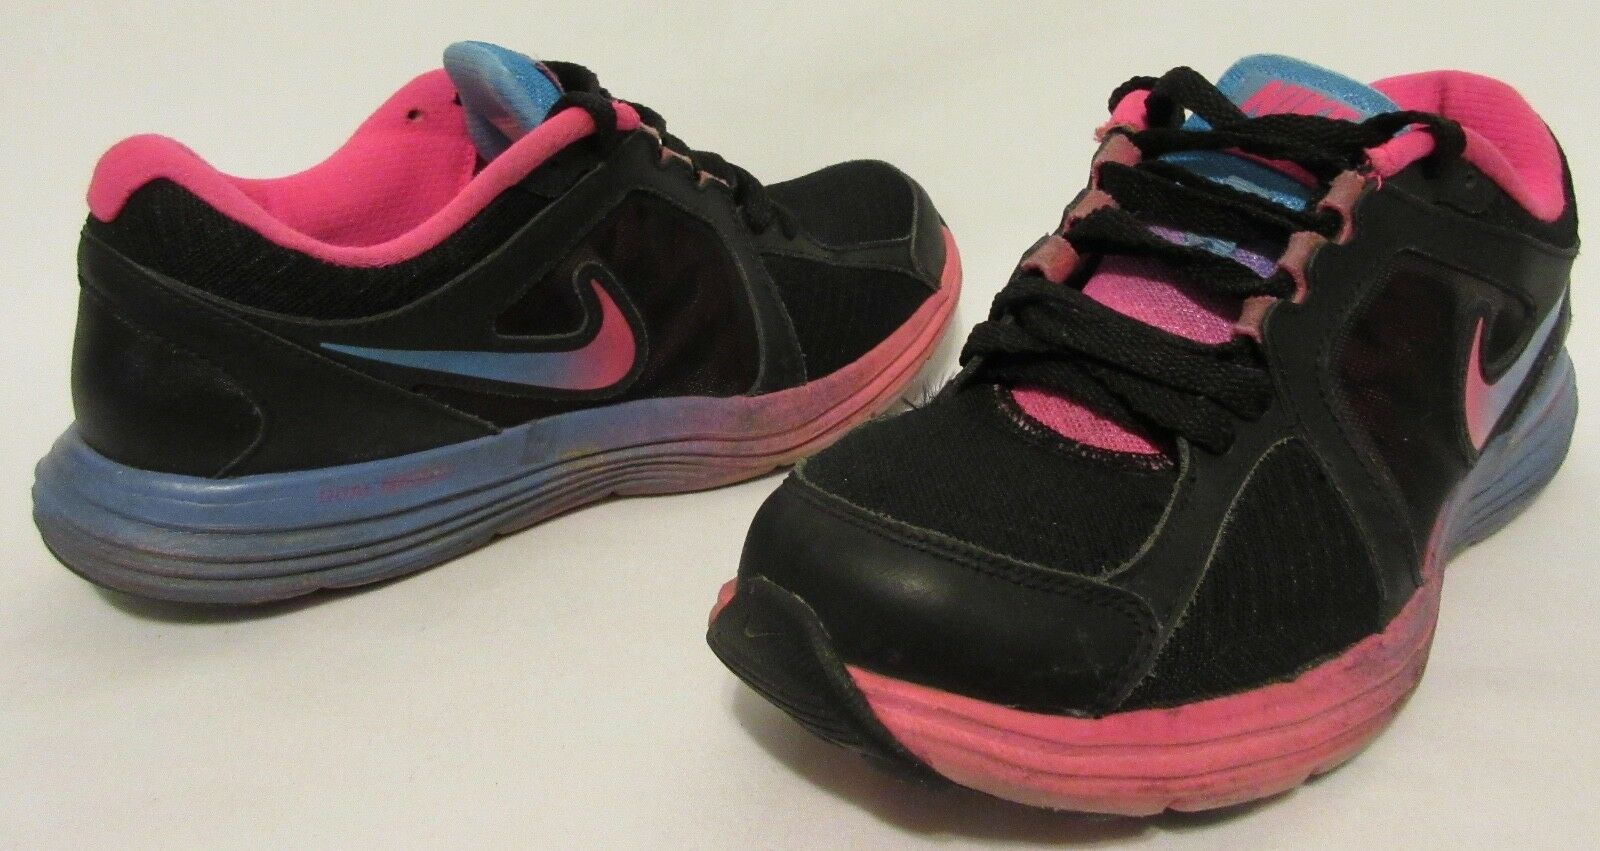 b779894dab521a Nike Dual Fusion St 3 Black Pink Blue 669750-003 Women US Size 6 for ...